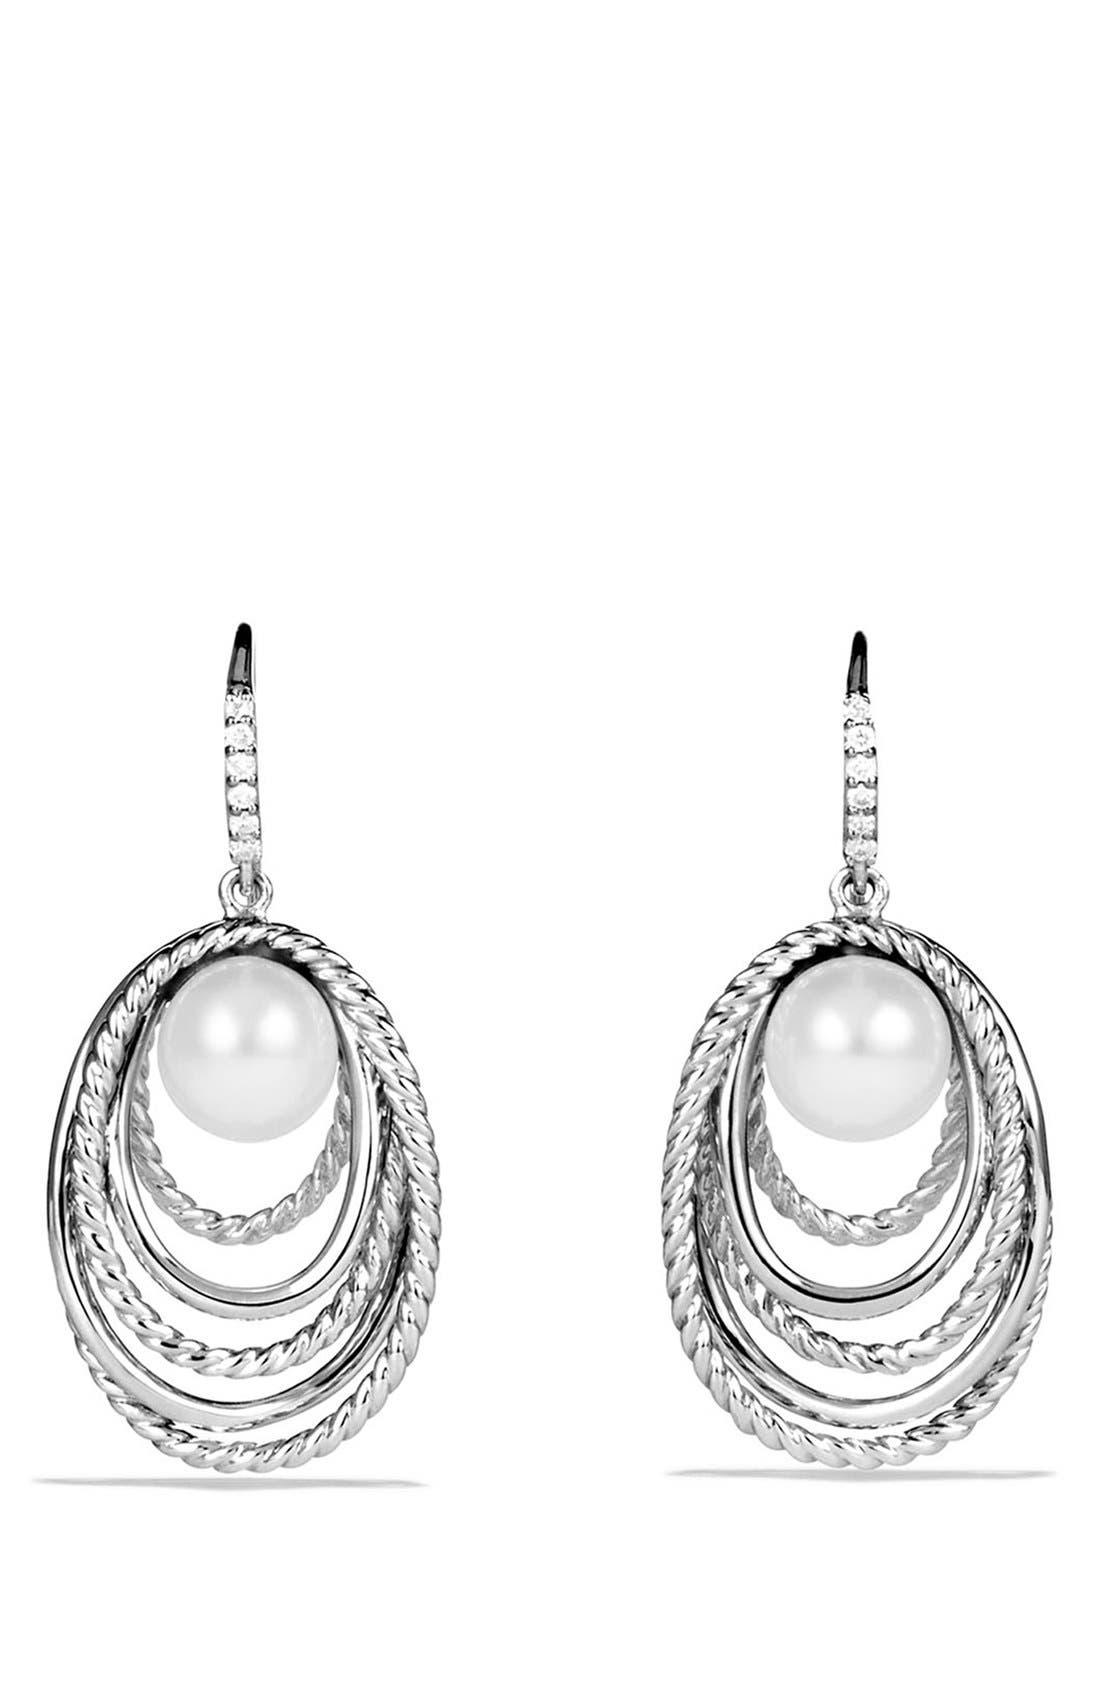 DAVID YURMAN Crossover Pearl Drop Earrings with Diamonds